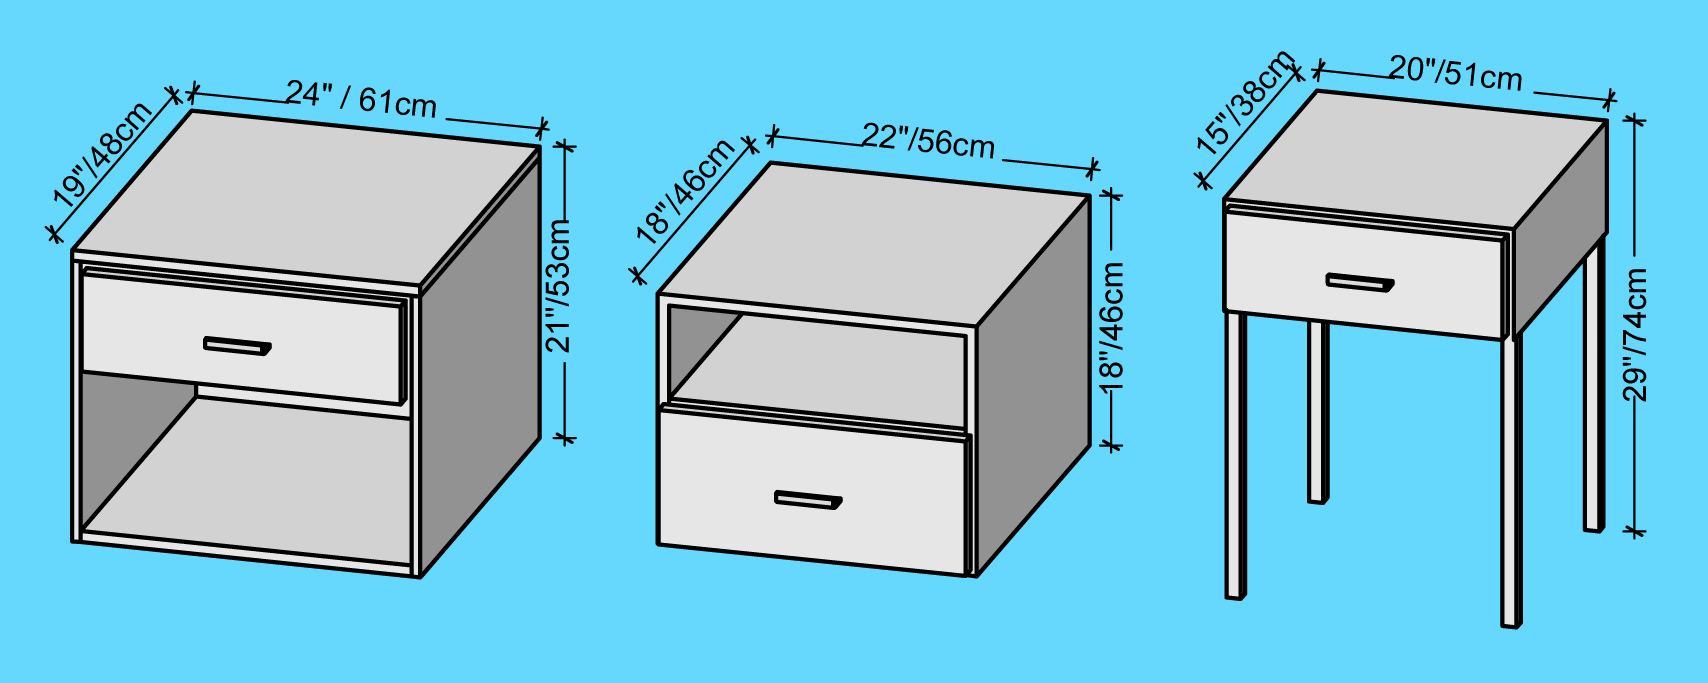 Nightstand Dimensions, Nightstand Height, Bedside Table Height, Bedside  Table Dimensions, Bedside Table